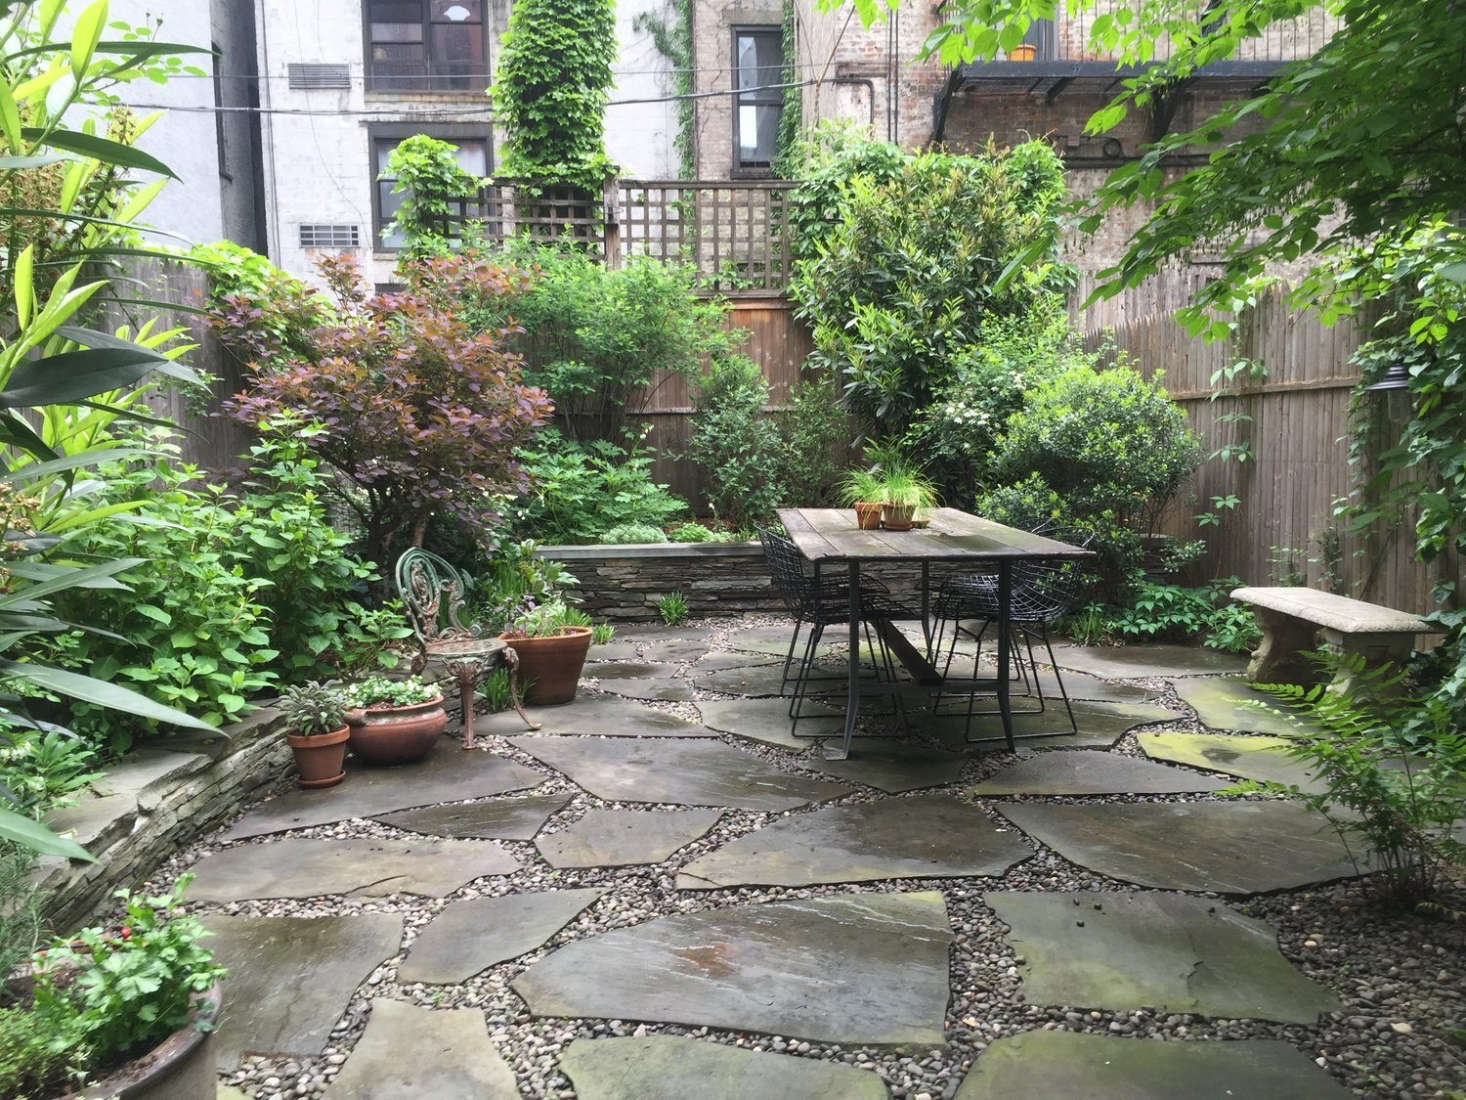 Rental Garden Makeovers: 13 Best Budget Ideas for an Outdoor Space